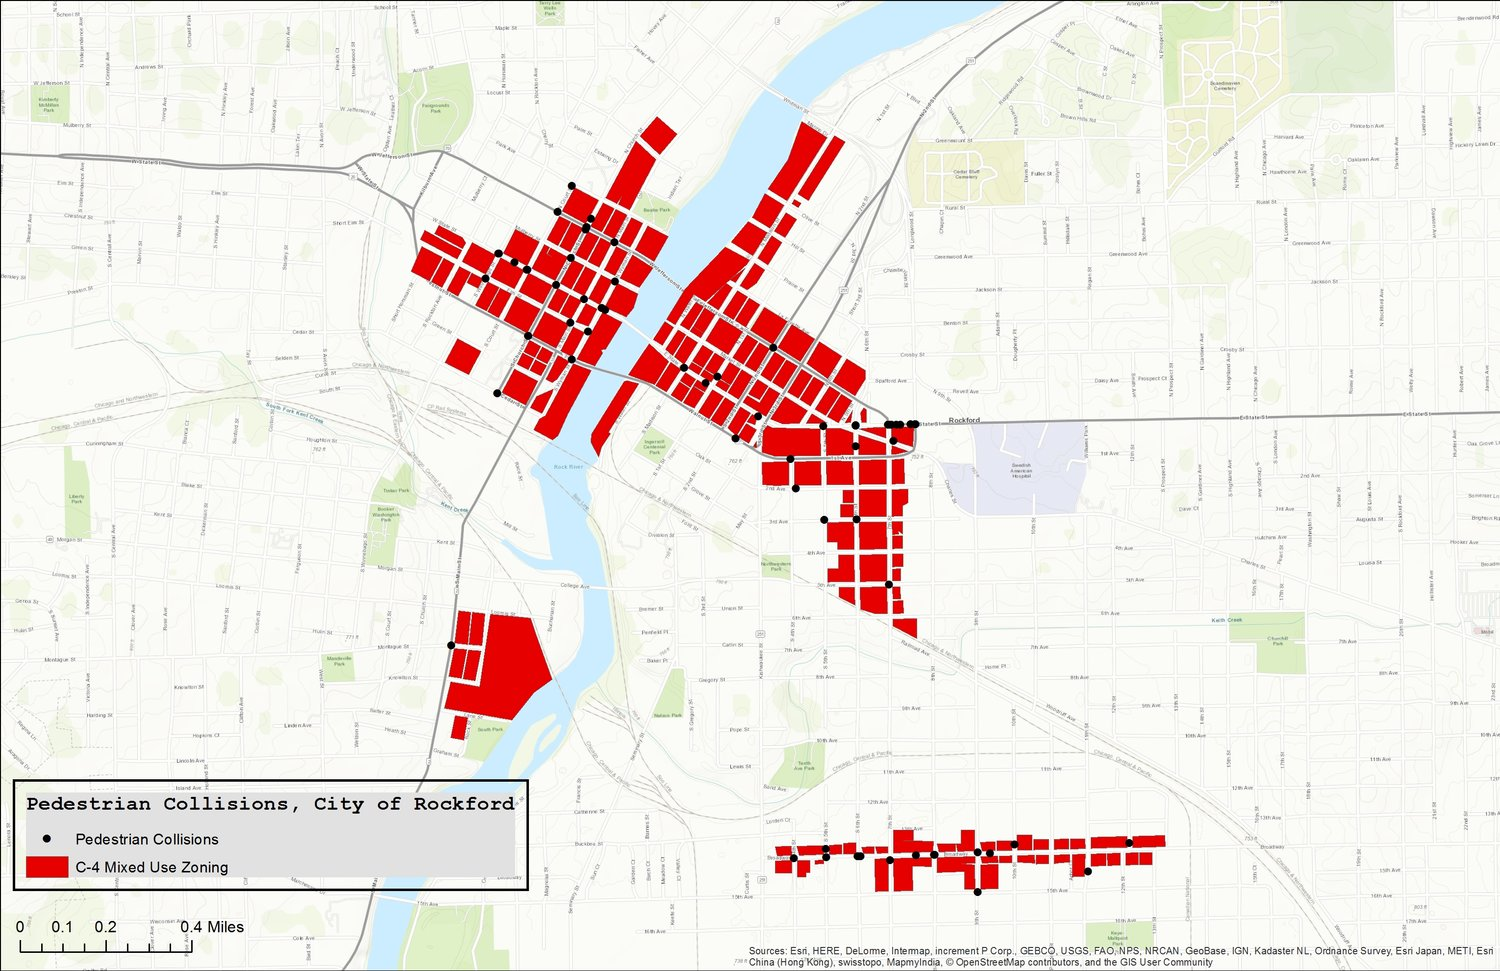 Pedestrian collisions in areas with mixed-use zoning in Rockford, Illinois.